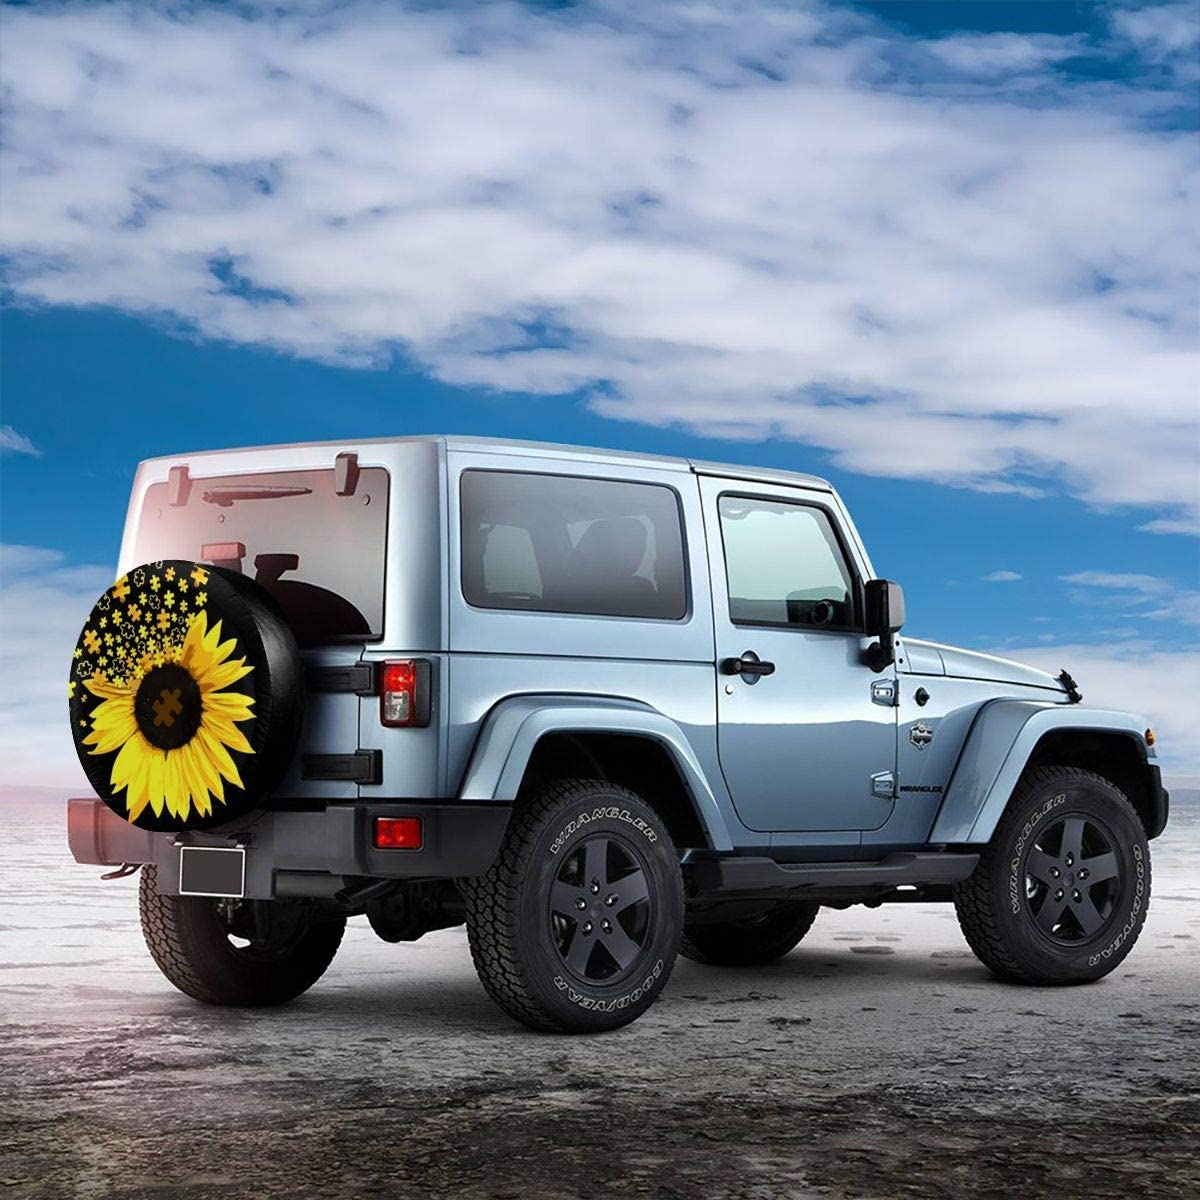 NELife Tire Cover Sunflower American Flag Spare Tire Cover Universal Wheel Covers Waterproof Tire Cover Fit for Jeep Trailer Rv SUV Truck Camper Travel Trailer Accessories 14-17 in